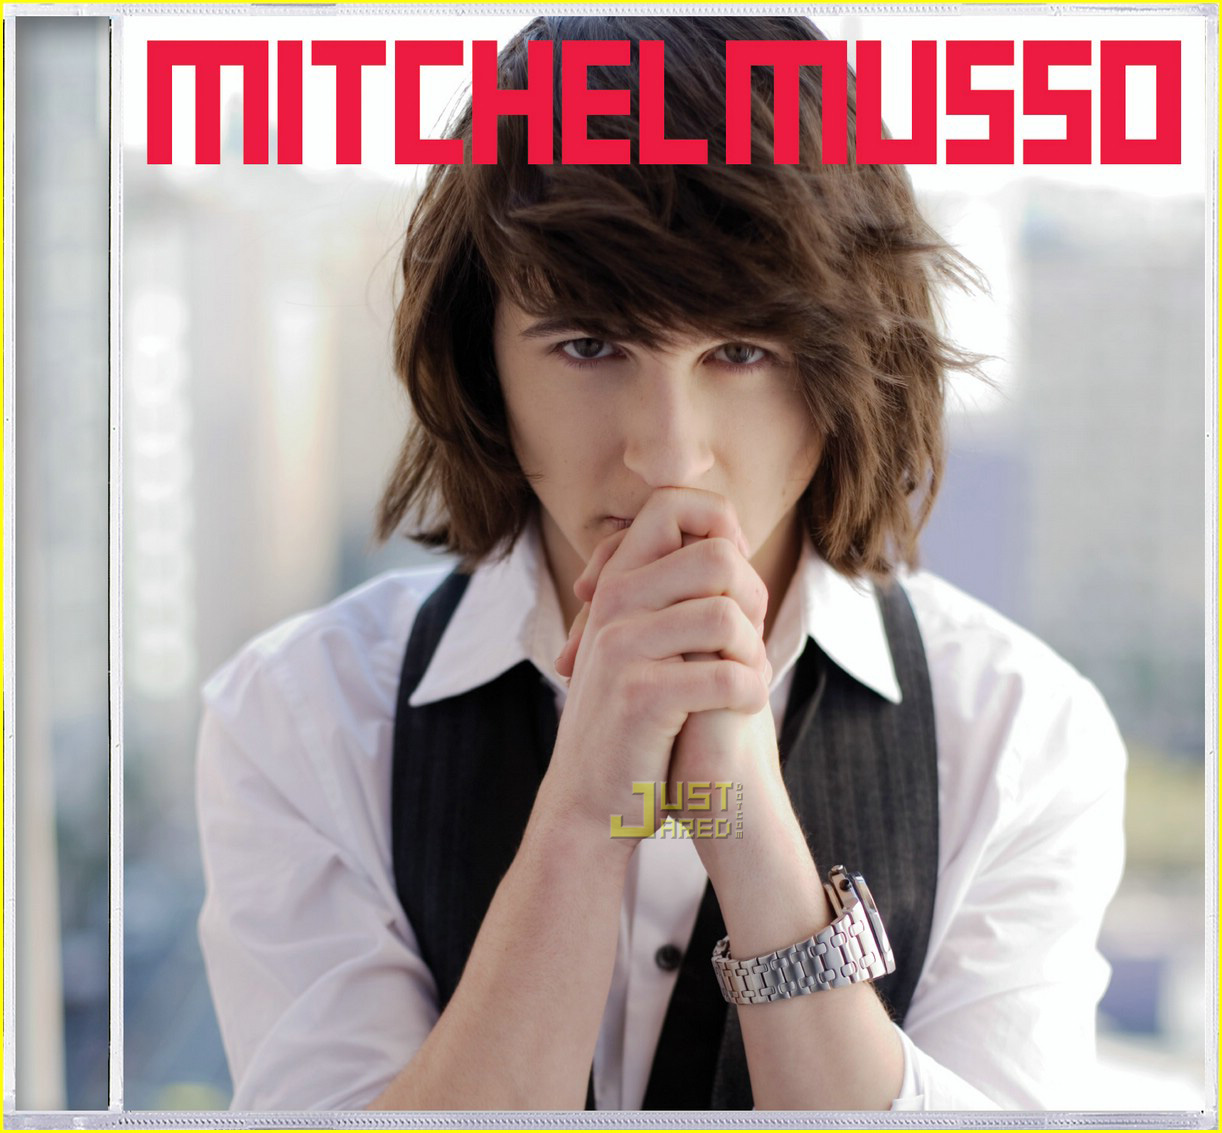 mitchel musso cd art 01